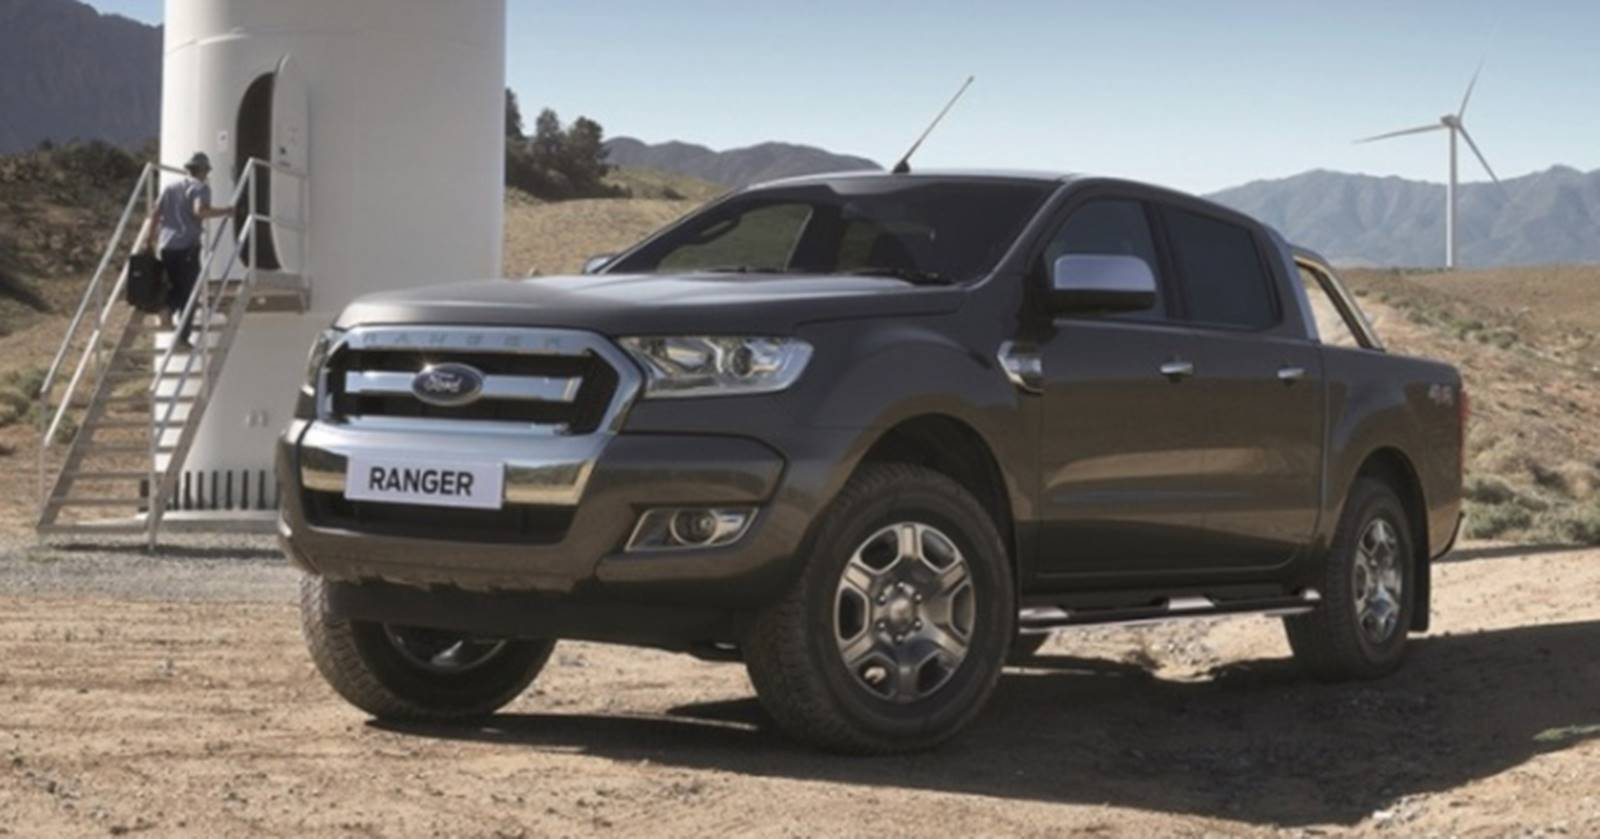 nova ford ranger 2016 fotos oficiais do interior. Black Bedroom Furniture Sets. Home Design Ideas